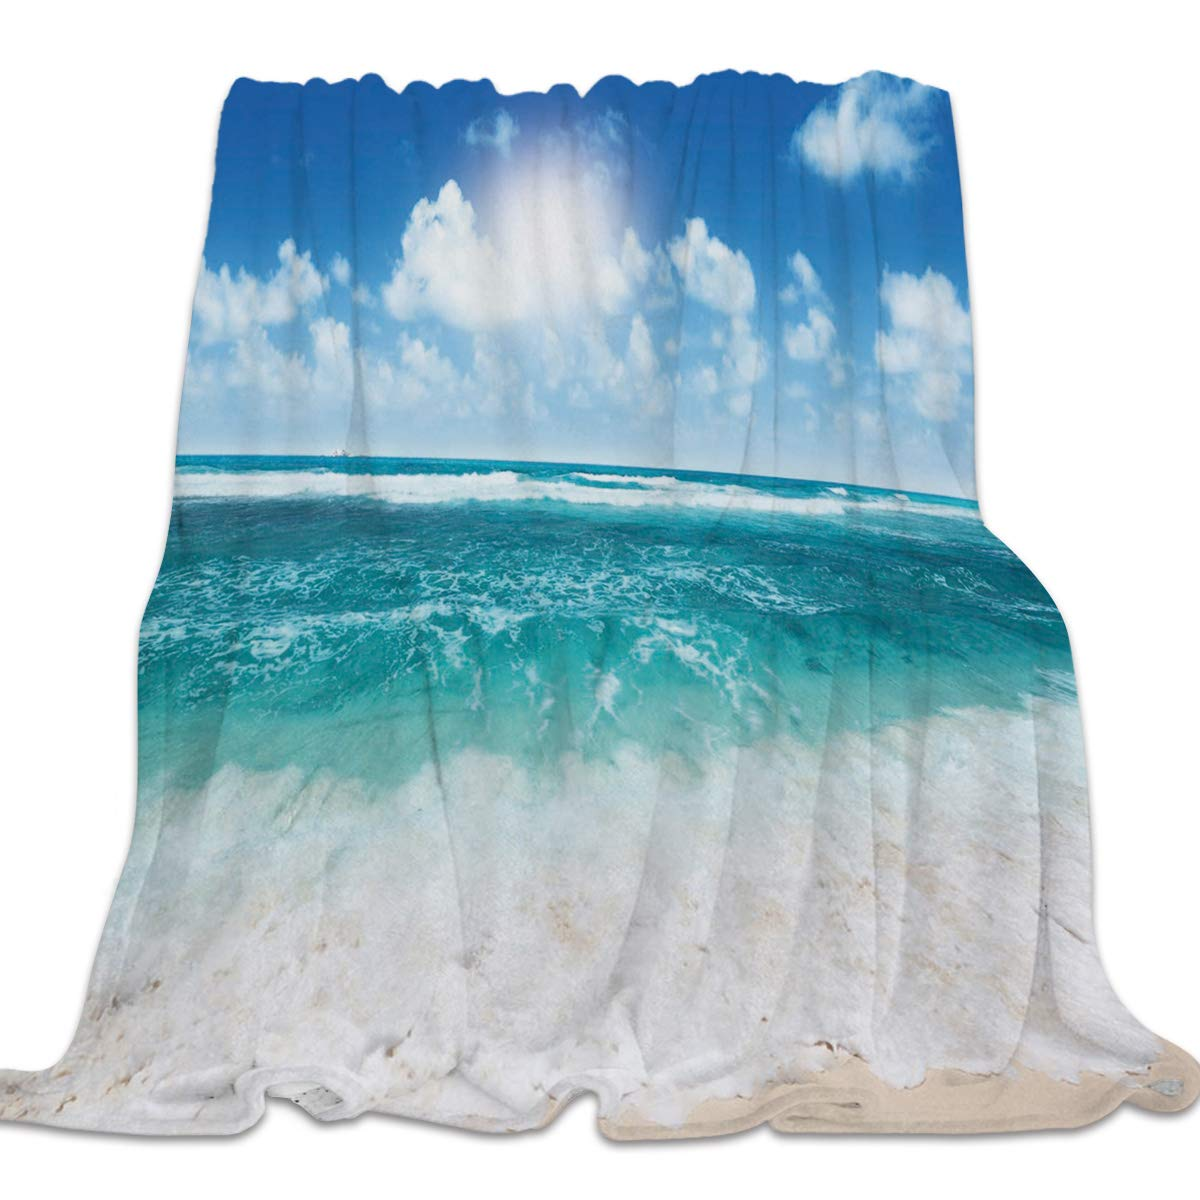 Beach5cly7478 59x79inch=150x200cm Clouday Flannel Fleece Bed Blanket Warm ThrowBlankets for Girls Boys,Cozy Lightweight Blankets for Bedroom Living Room Sofa Couch,Beautiful Universe Pattern,49x59inch